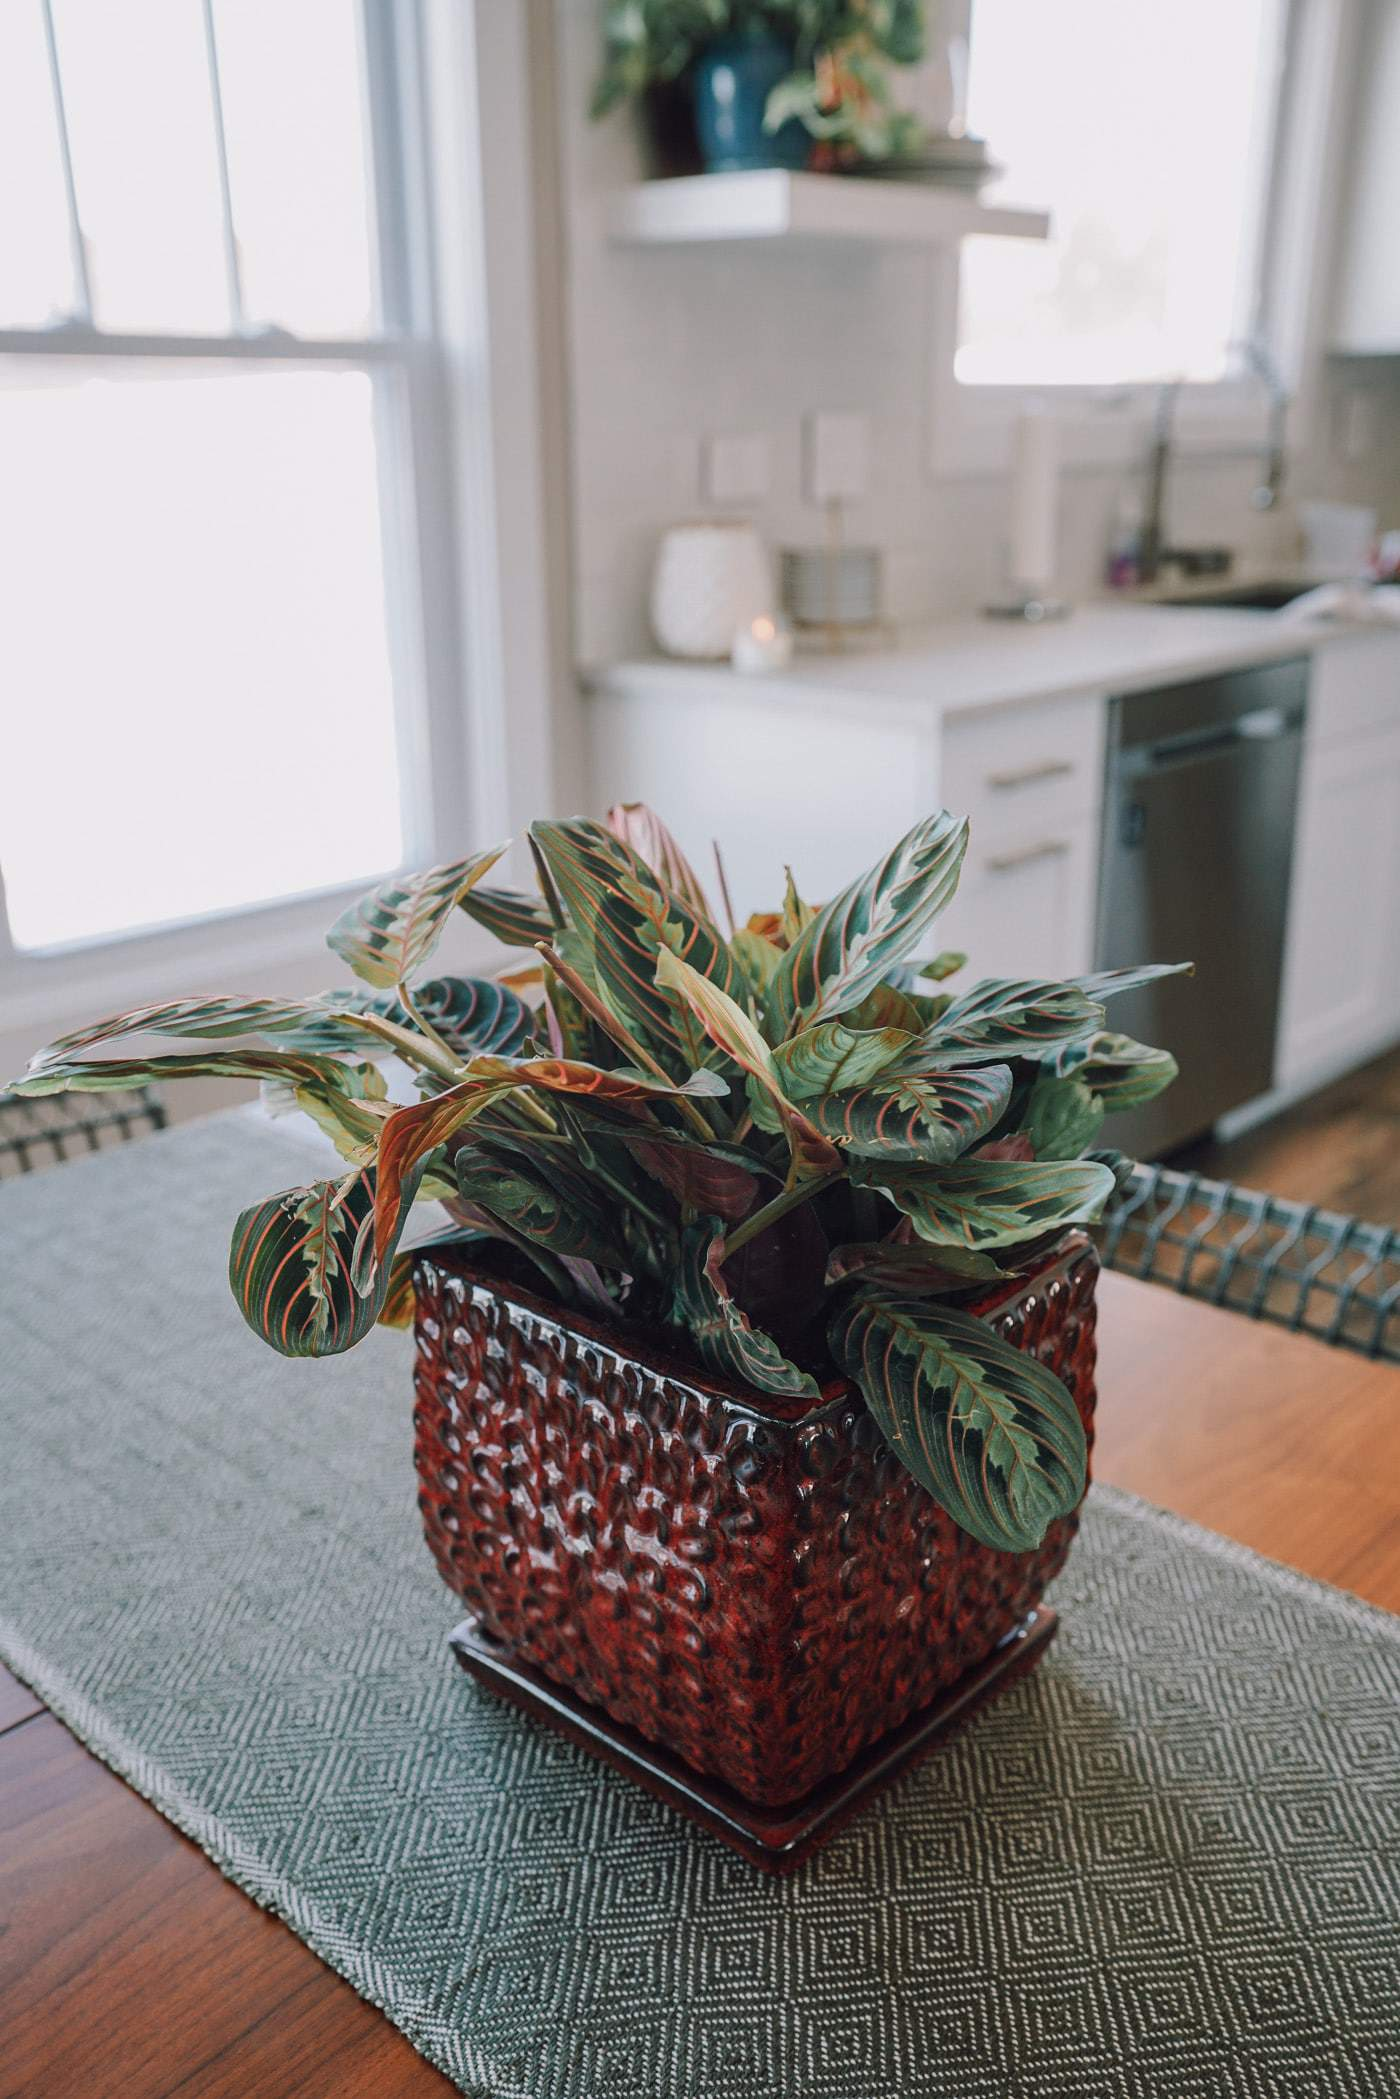 Where To Buy Indoor Plants Online 13 Places To Buy Indoor Plants Online A Lily Love Affair